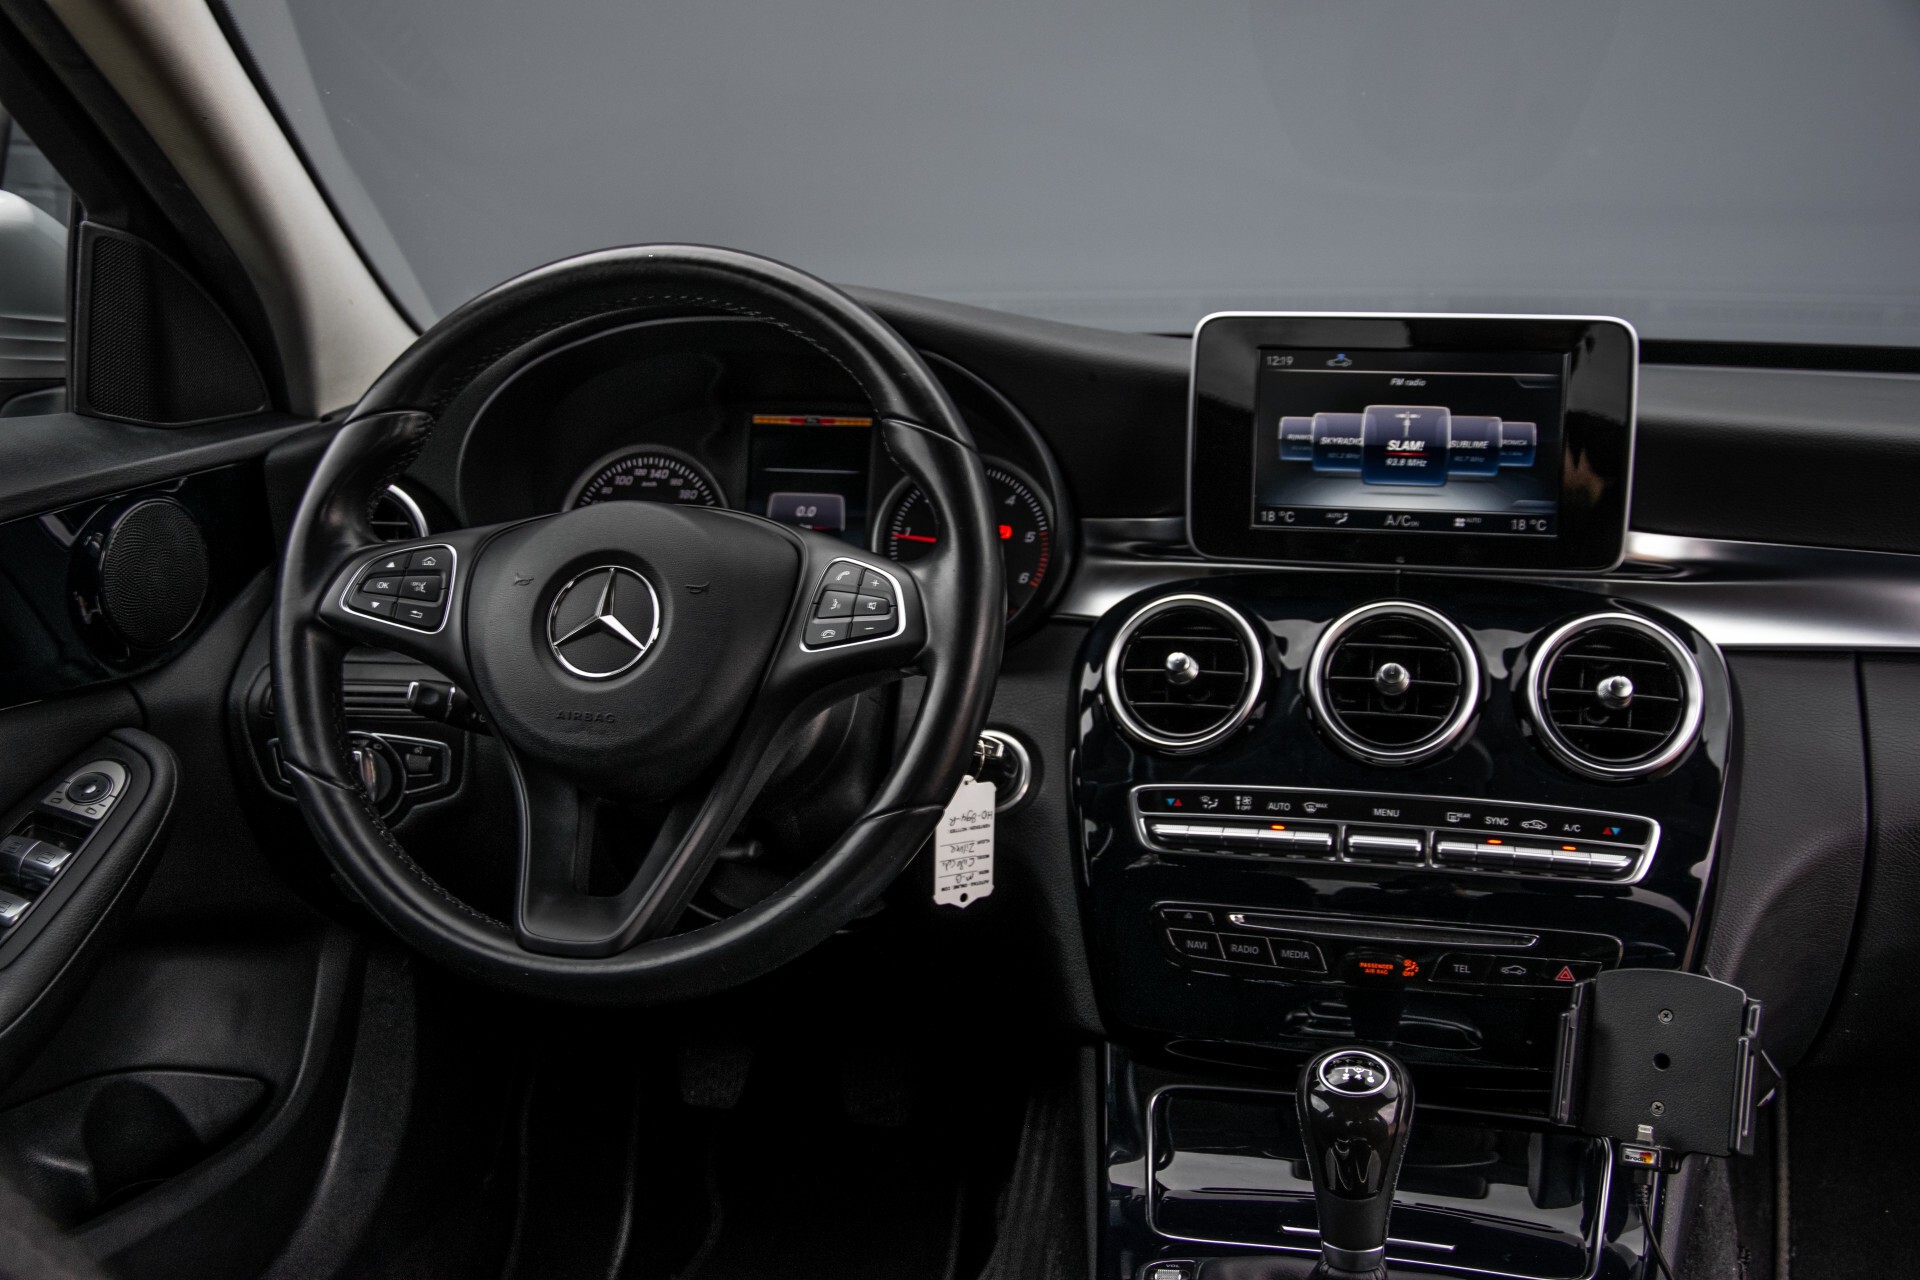 Mercedes-Benz C-Klasse 180 Bluetec Lease Edition Intelligent Light System/Cruise Control/Navi Foto 6